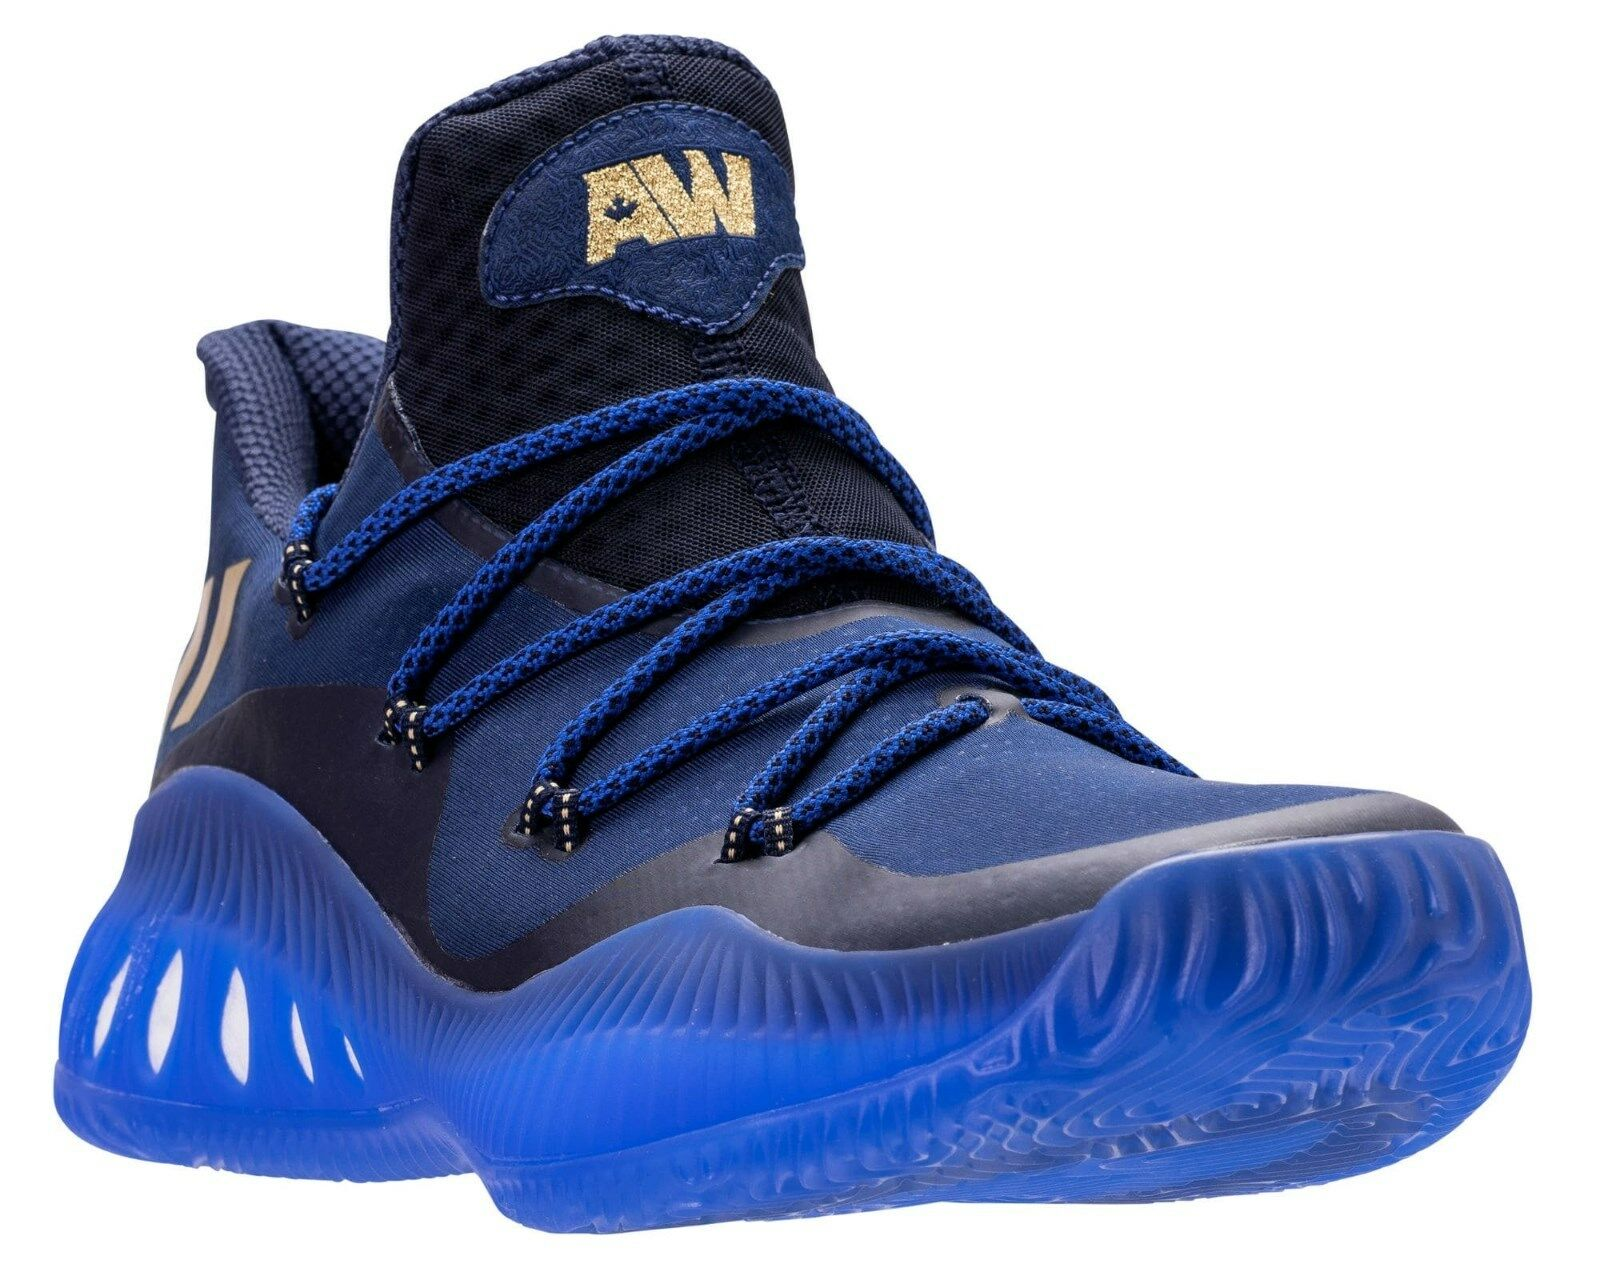 Adidas Crazy Explosive Low Homme Basketball Chaussures BW0571 Taille: US 7